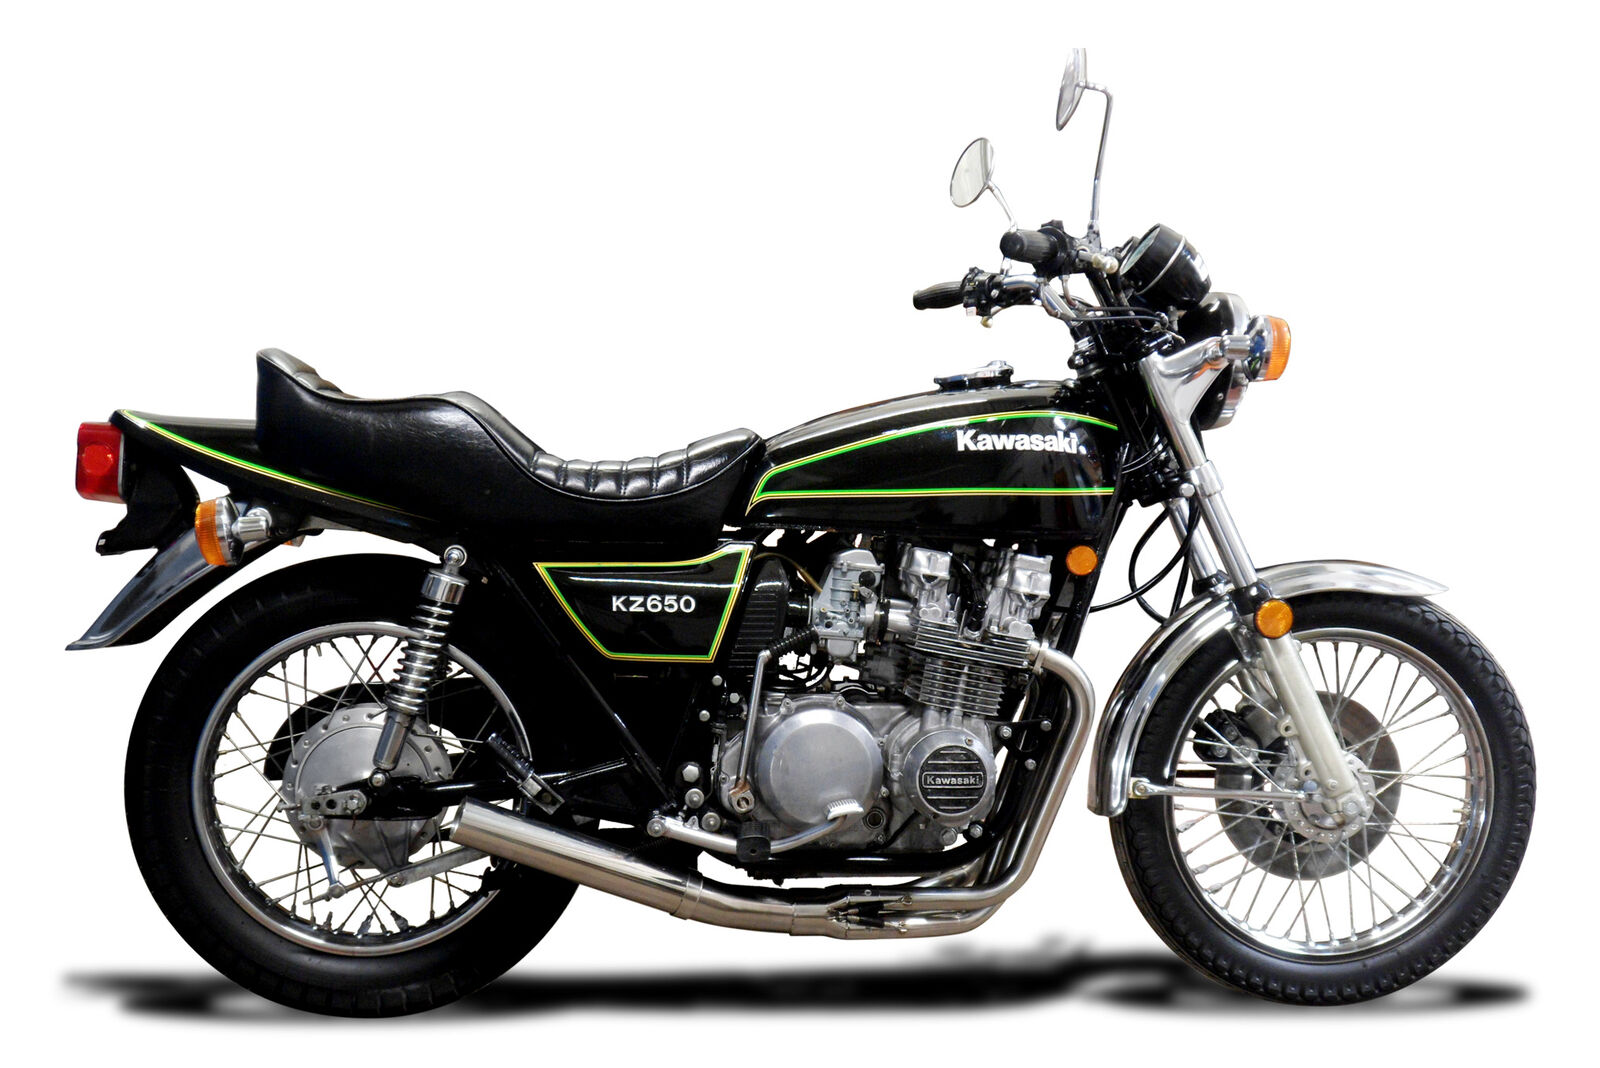 with Classic Megaphone Muffler and Stainless Steel 4-1 Headers 1976-1980 Delkevic Aftermarket Full System compatible with Kawasaki KZ650 B /& C